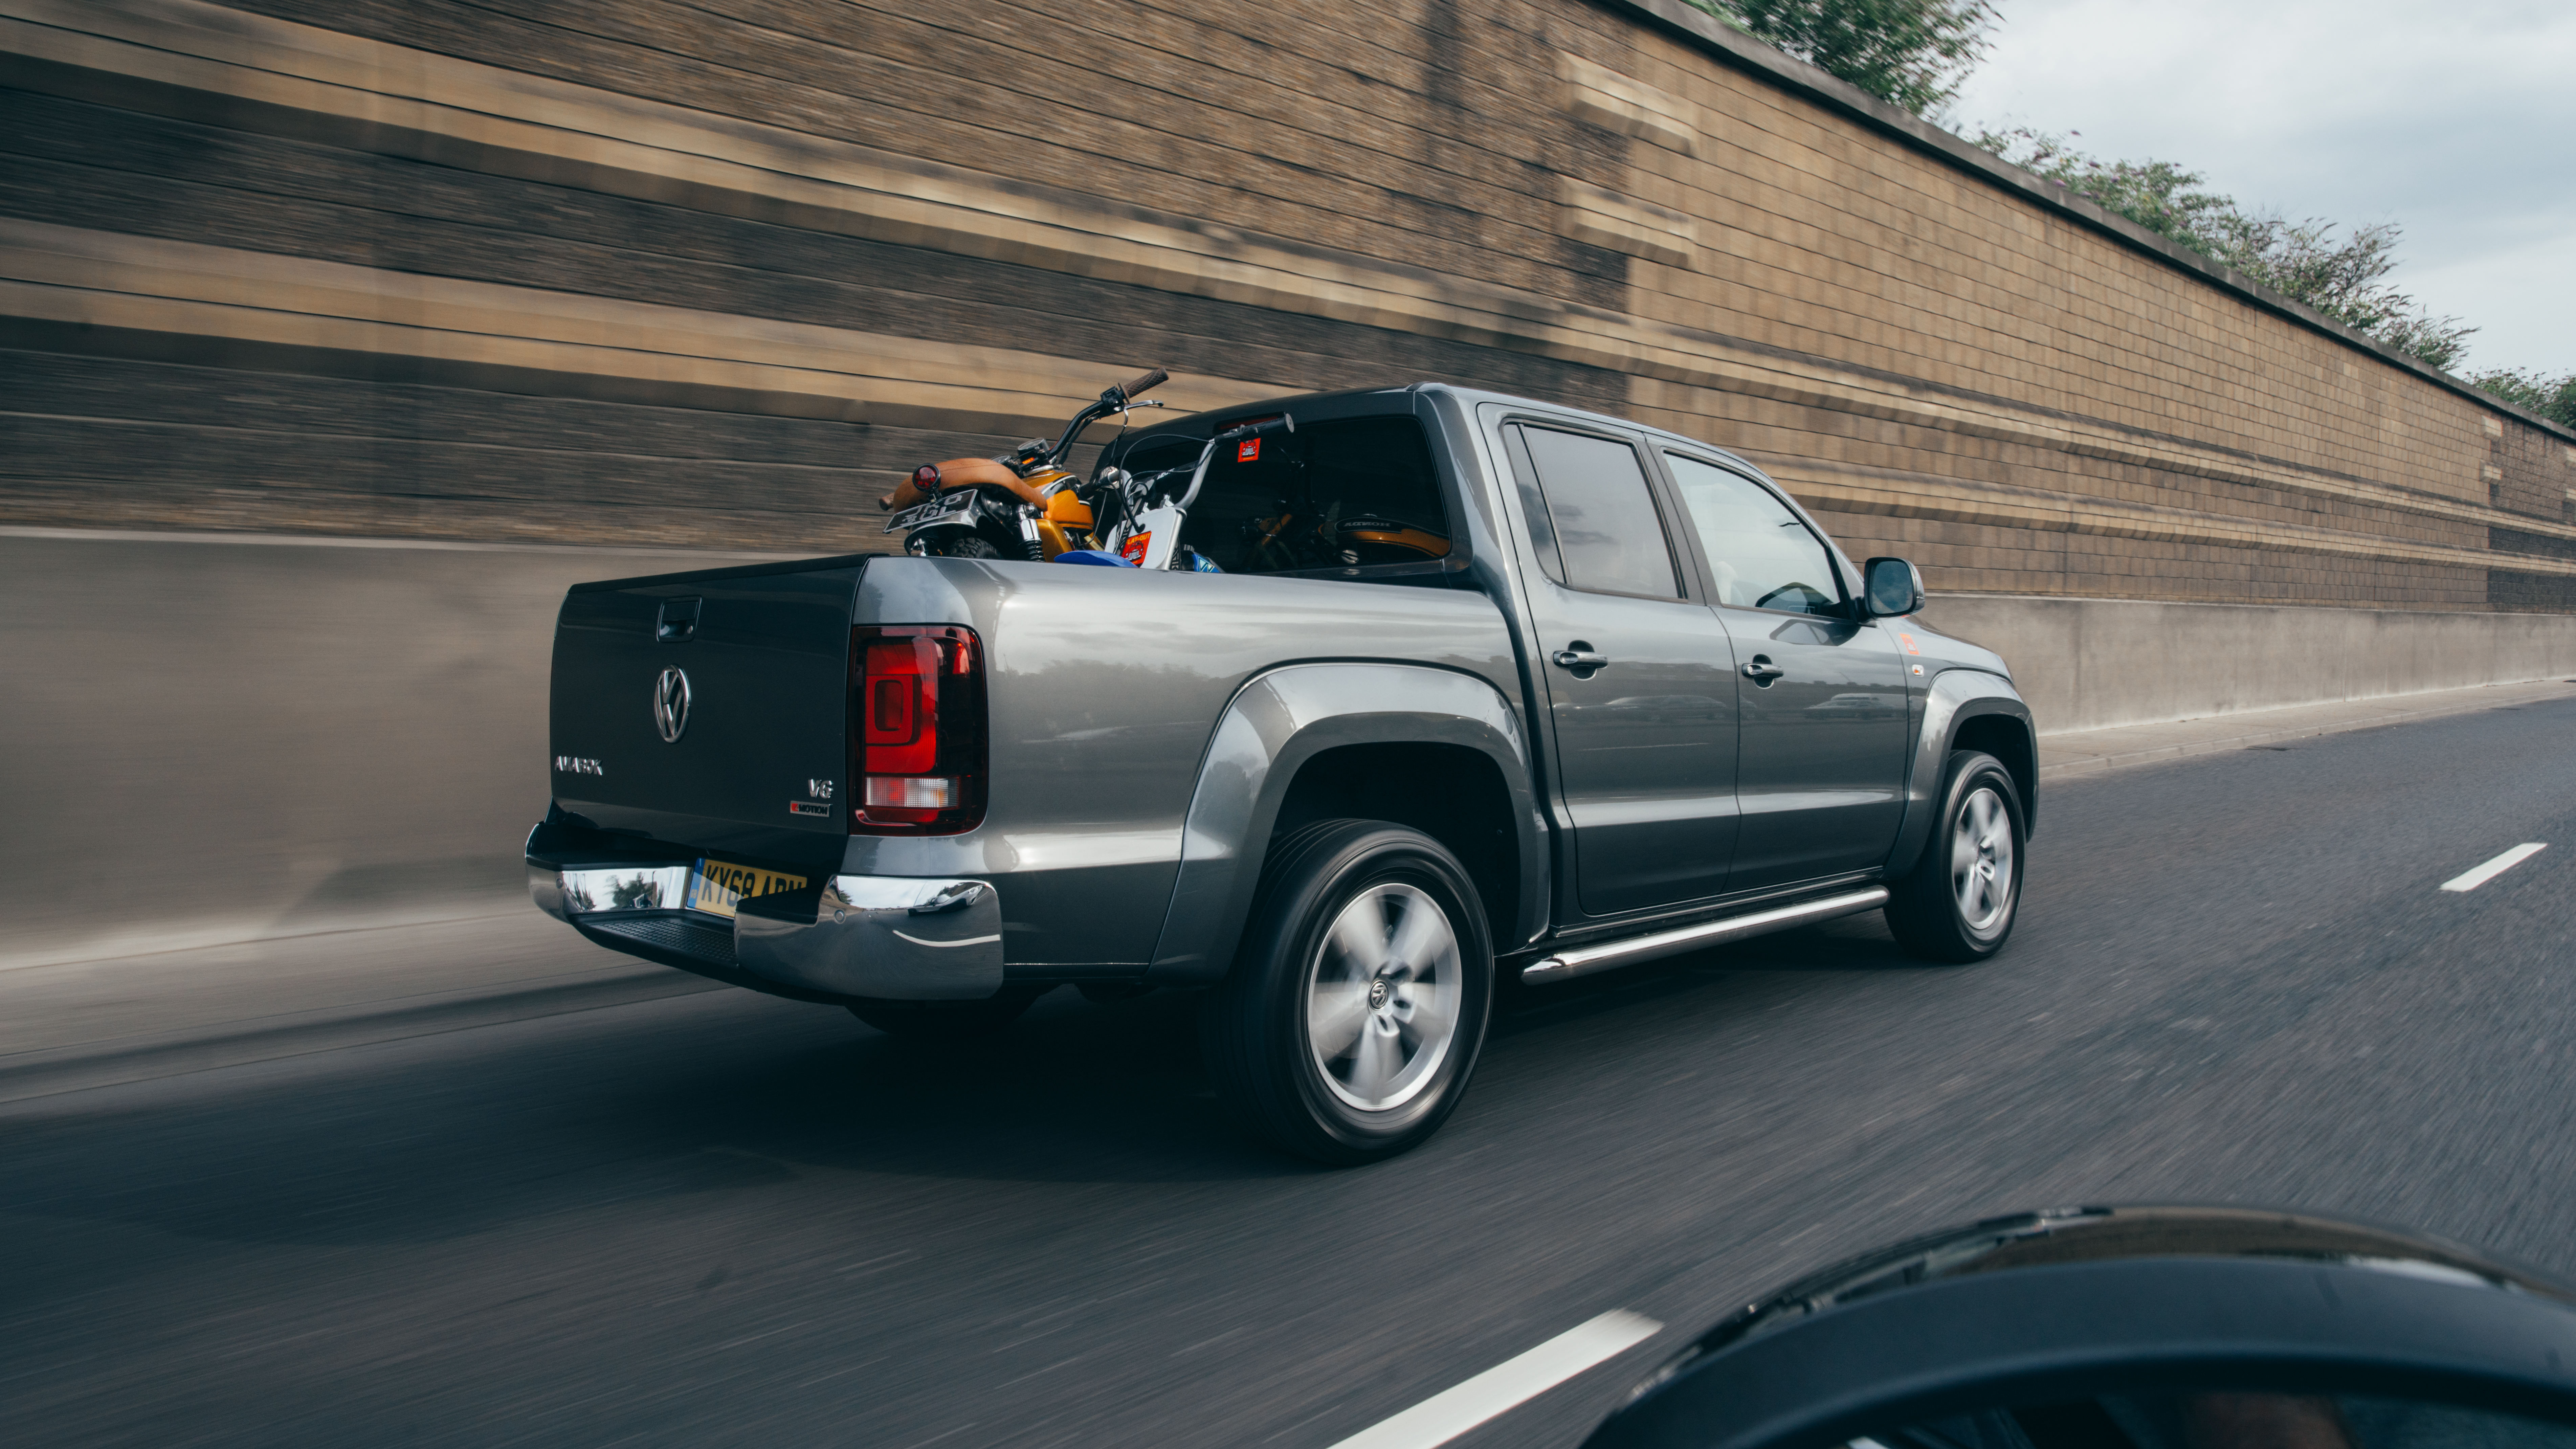 The Volkswagen Amarok is loaded up with kit